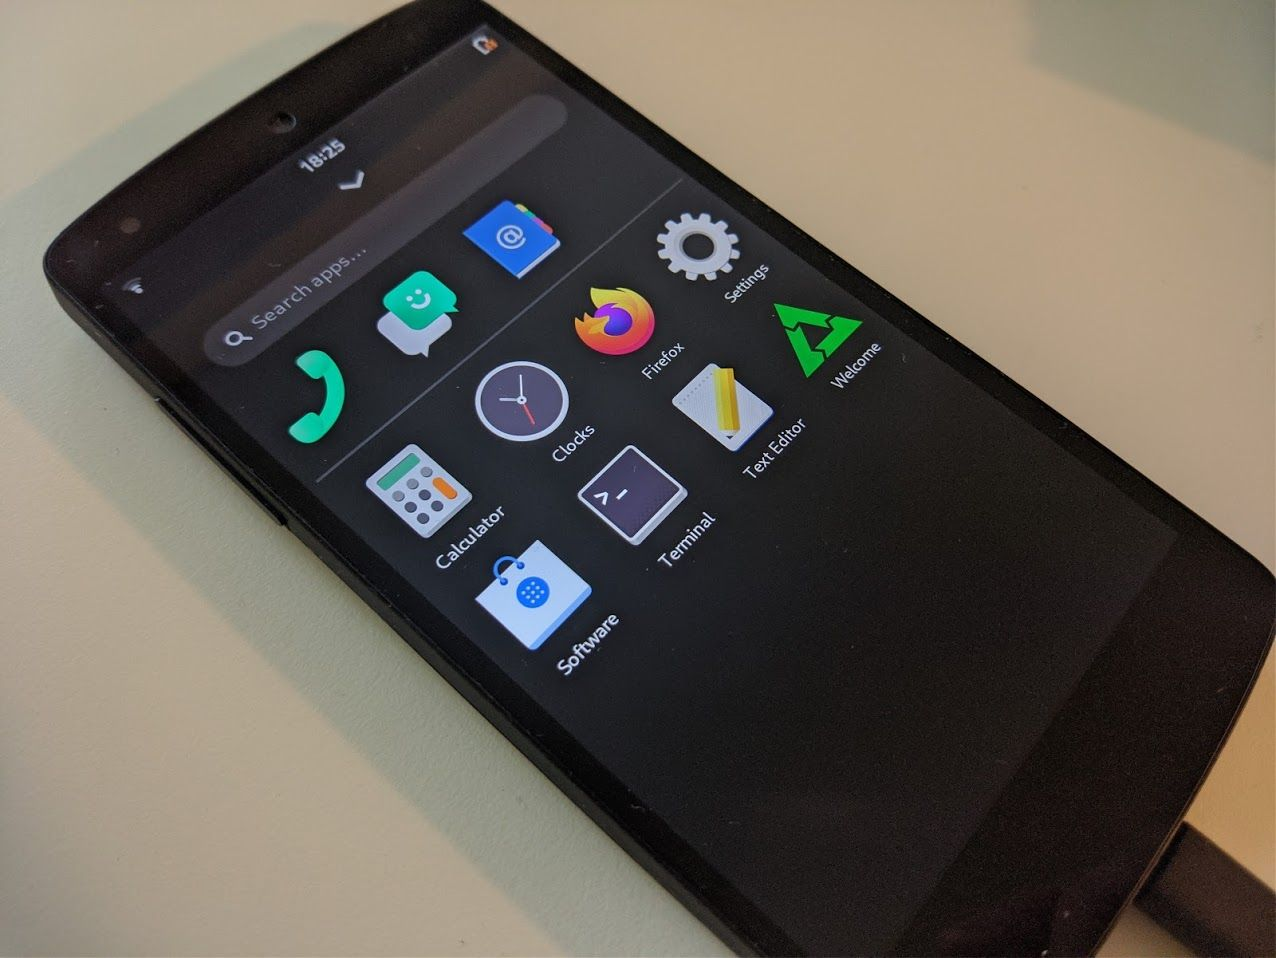 Using a Google Nexus 5 as a Linux phone, in 2020